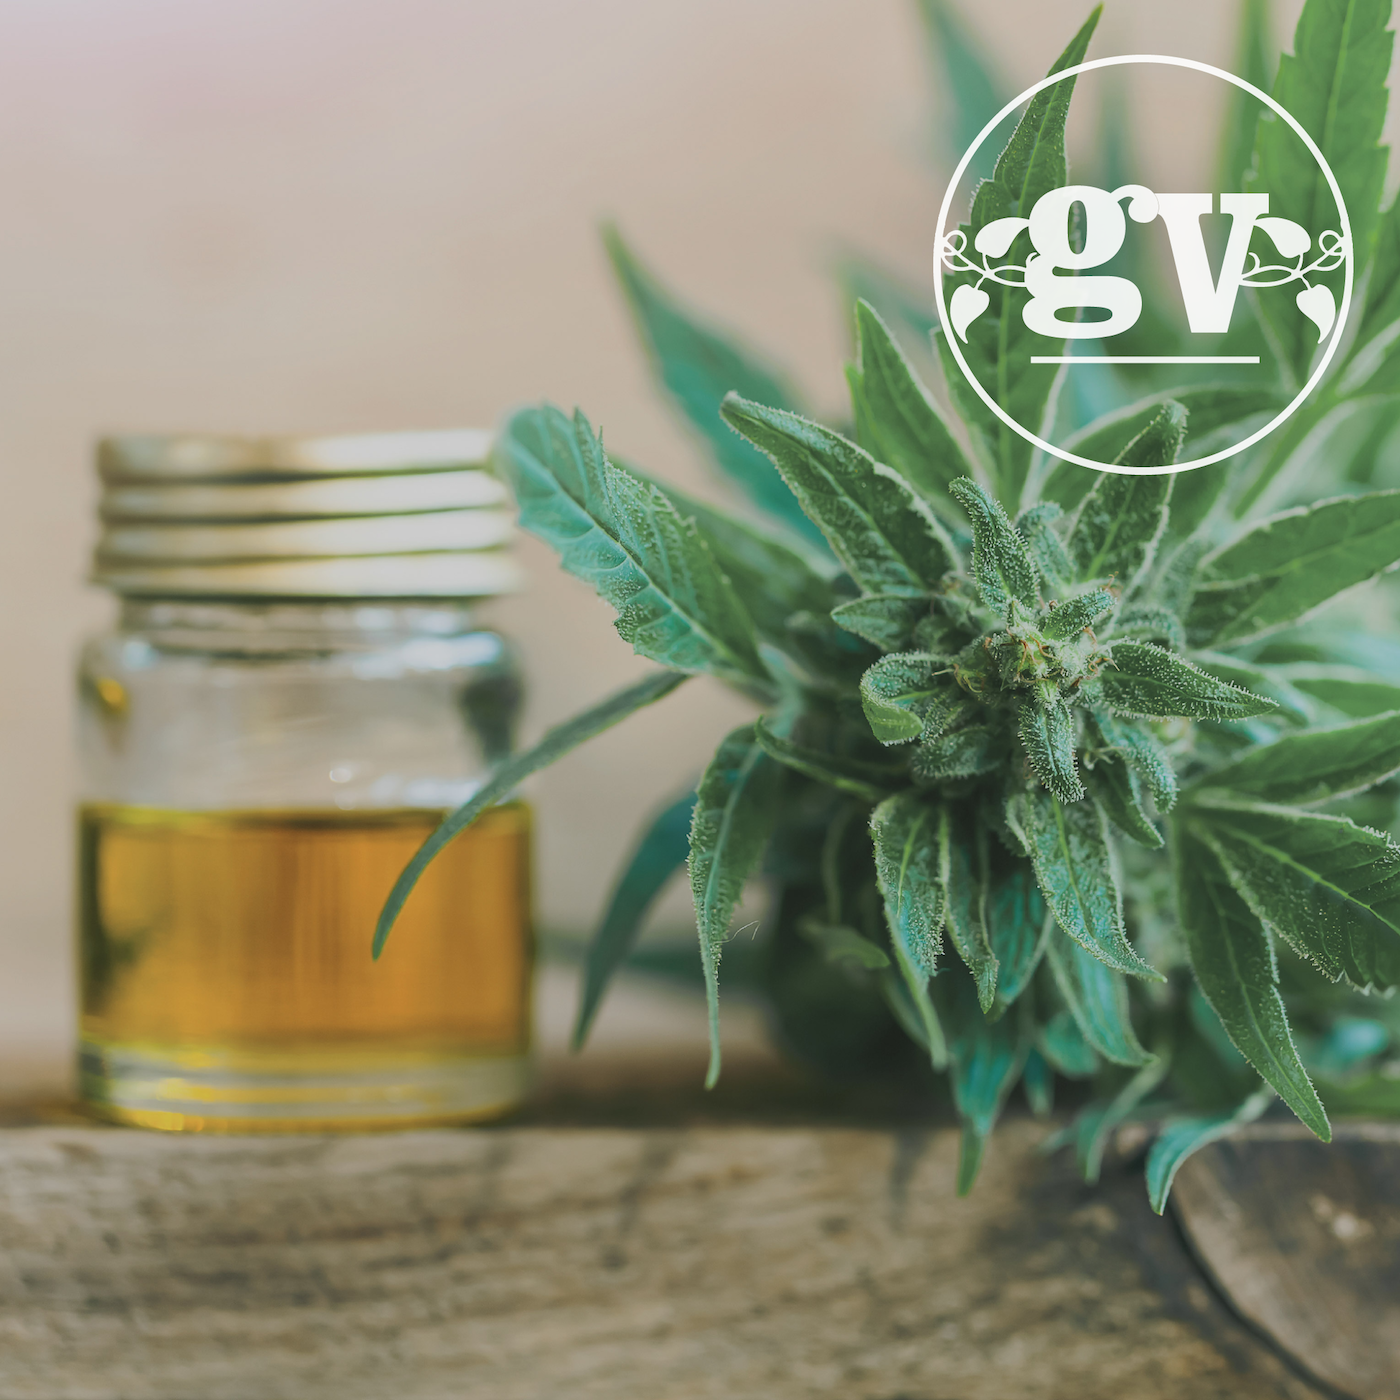 Dear Catherine: - I have heard that you sell CBD oil at the store, can you tell me more about it? With the legalization of marijuana, I think we're all wondering the difference. I experience pain and inflammation often and am wondering if it will give me relief without the high!—A Curious Canadian